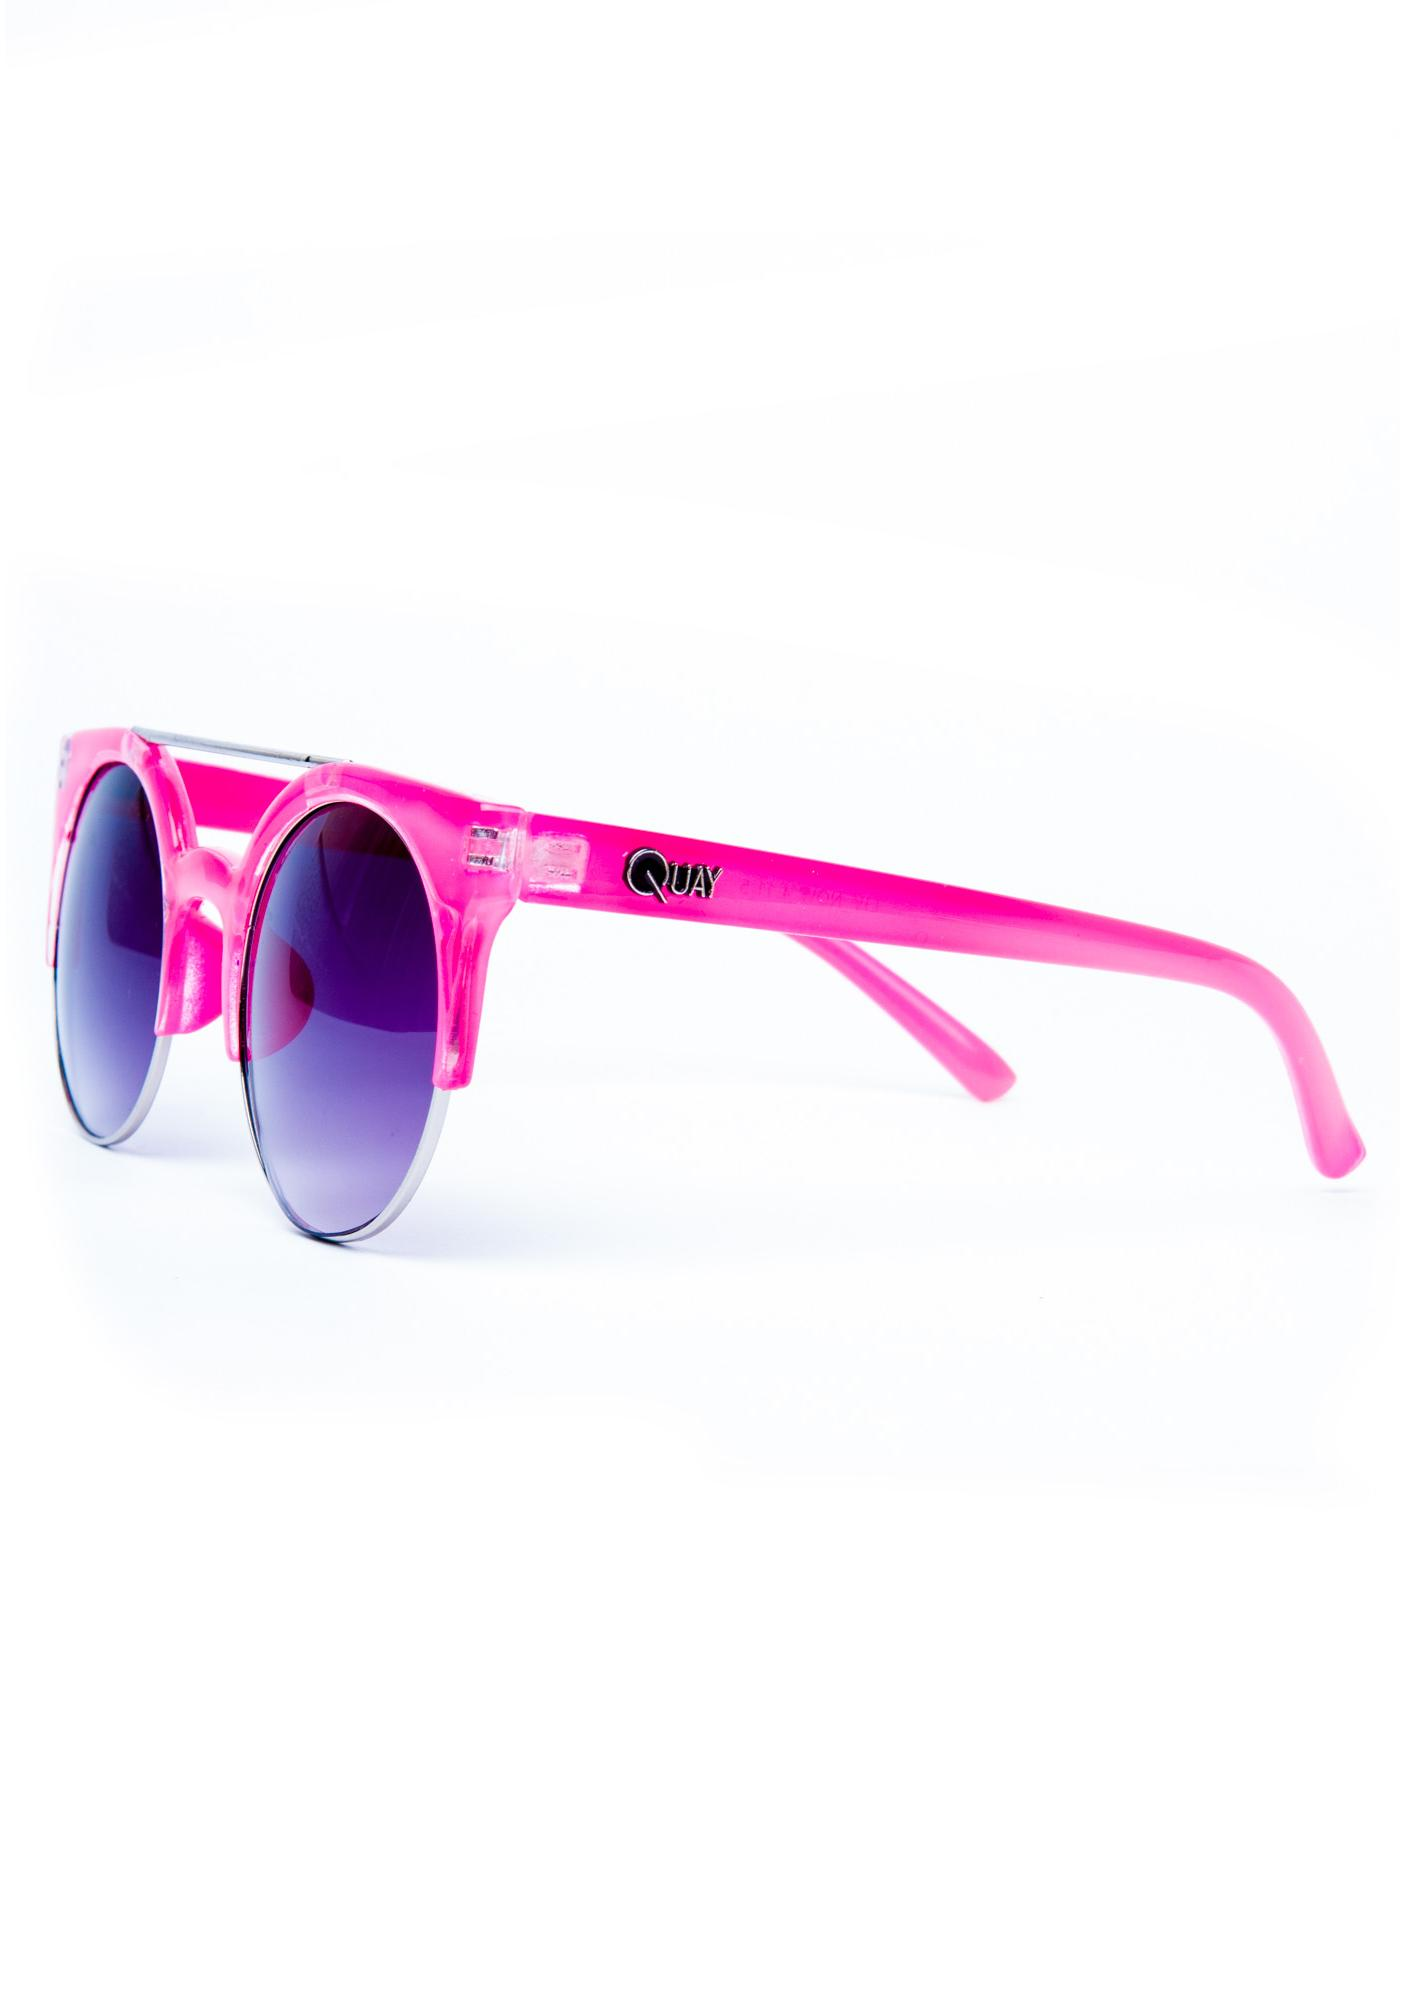 Quay Eyeware The Liv Now Sunglasses